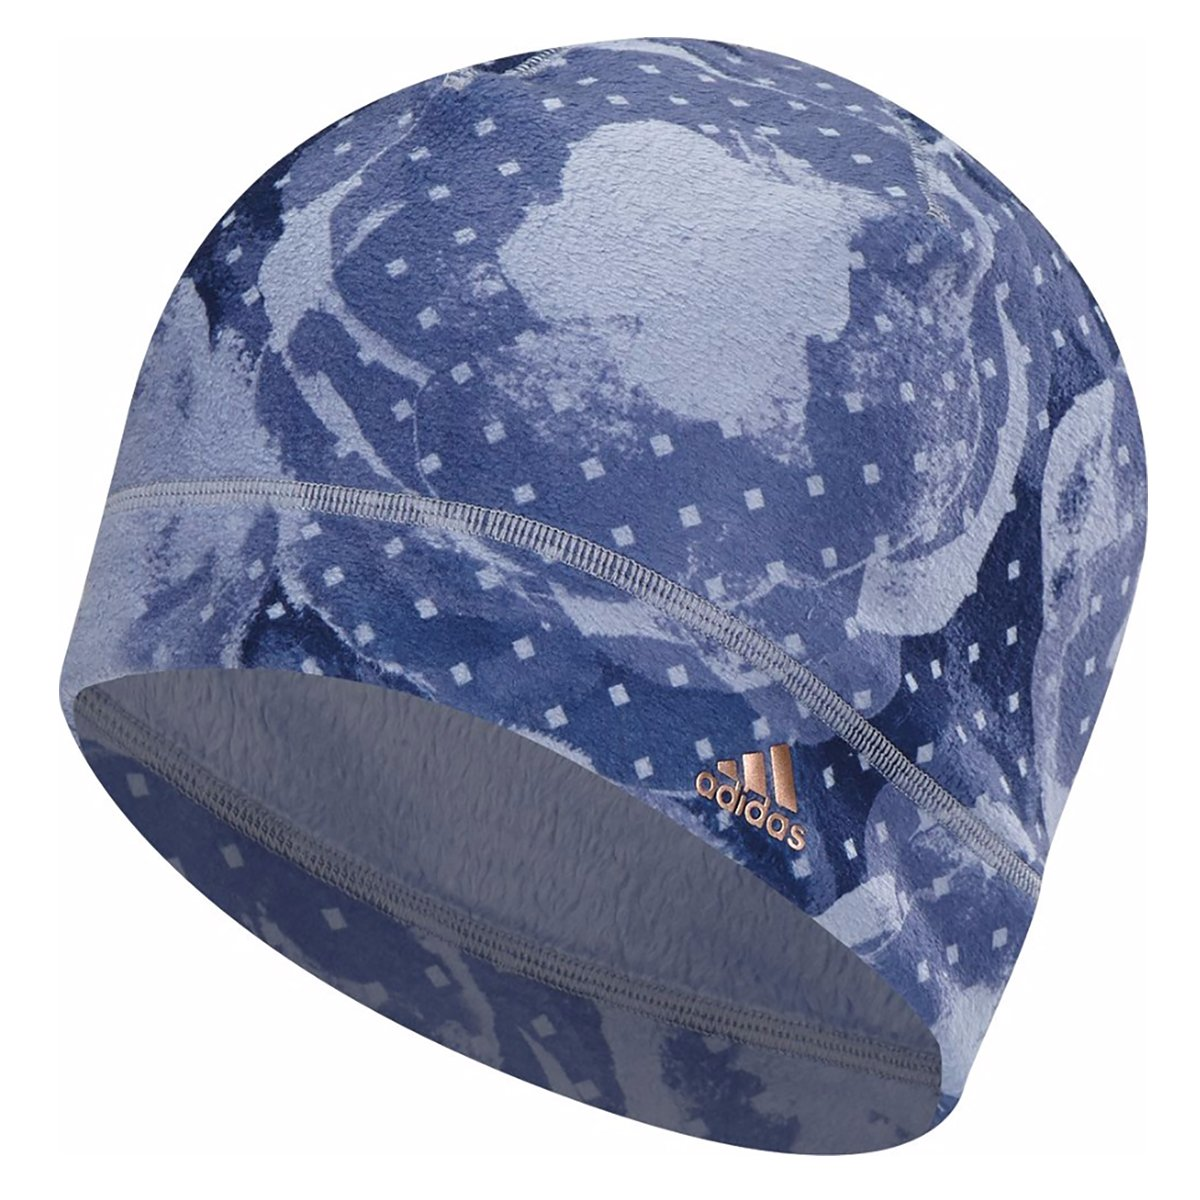 6bd8a81aacbd5 Amazon.com   Adidas Climawarm Golf Beanie Women Black One Size Fits All    Sports   Outdoors